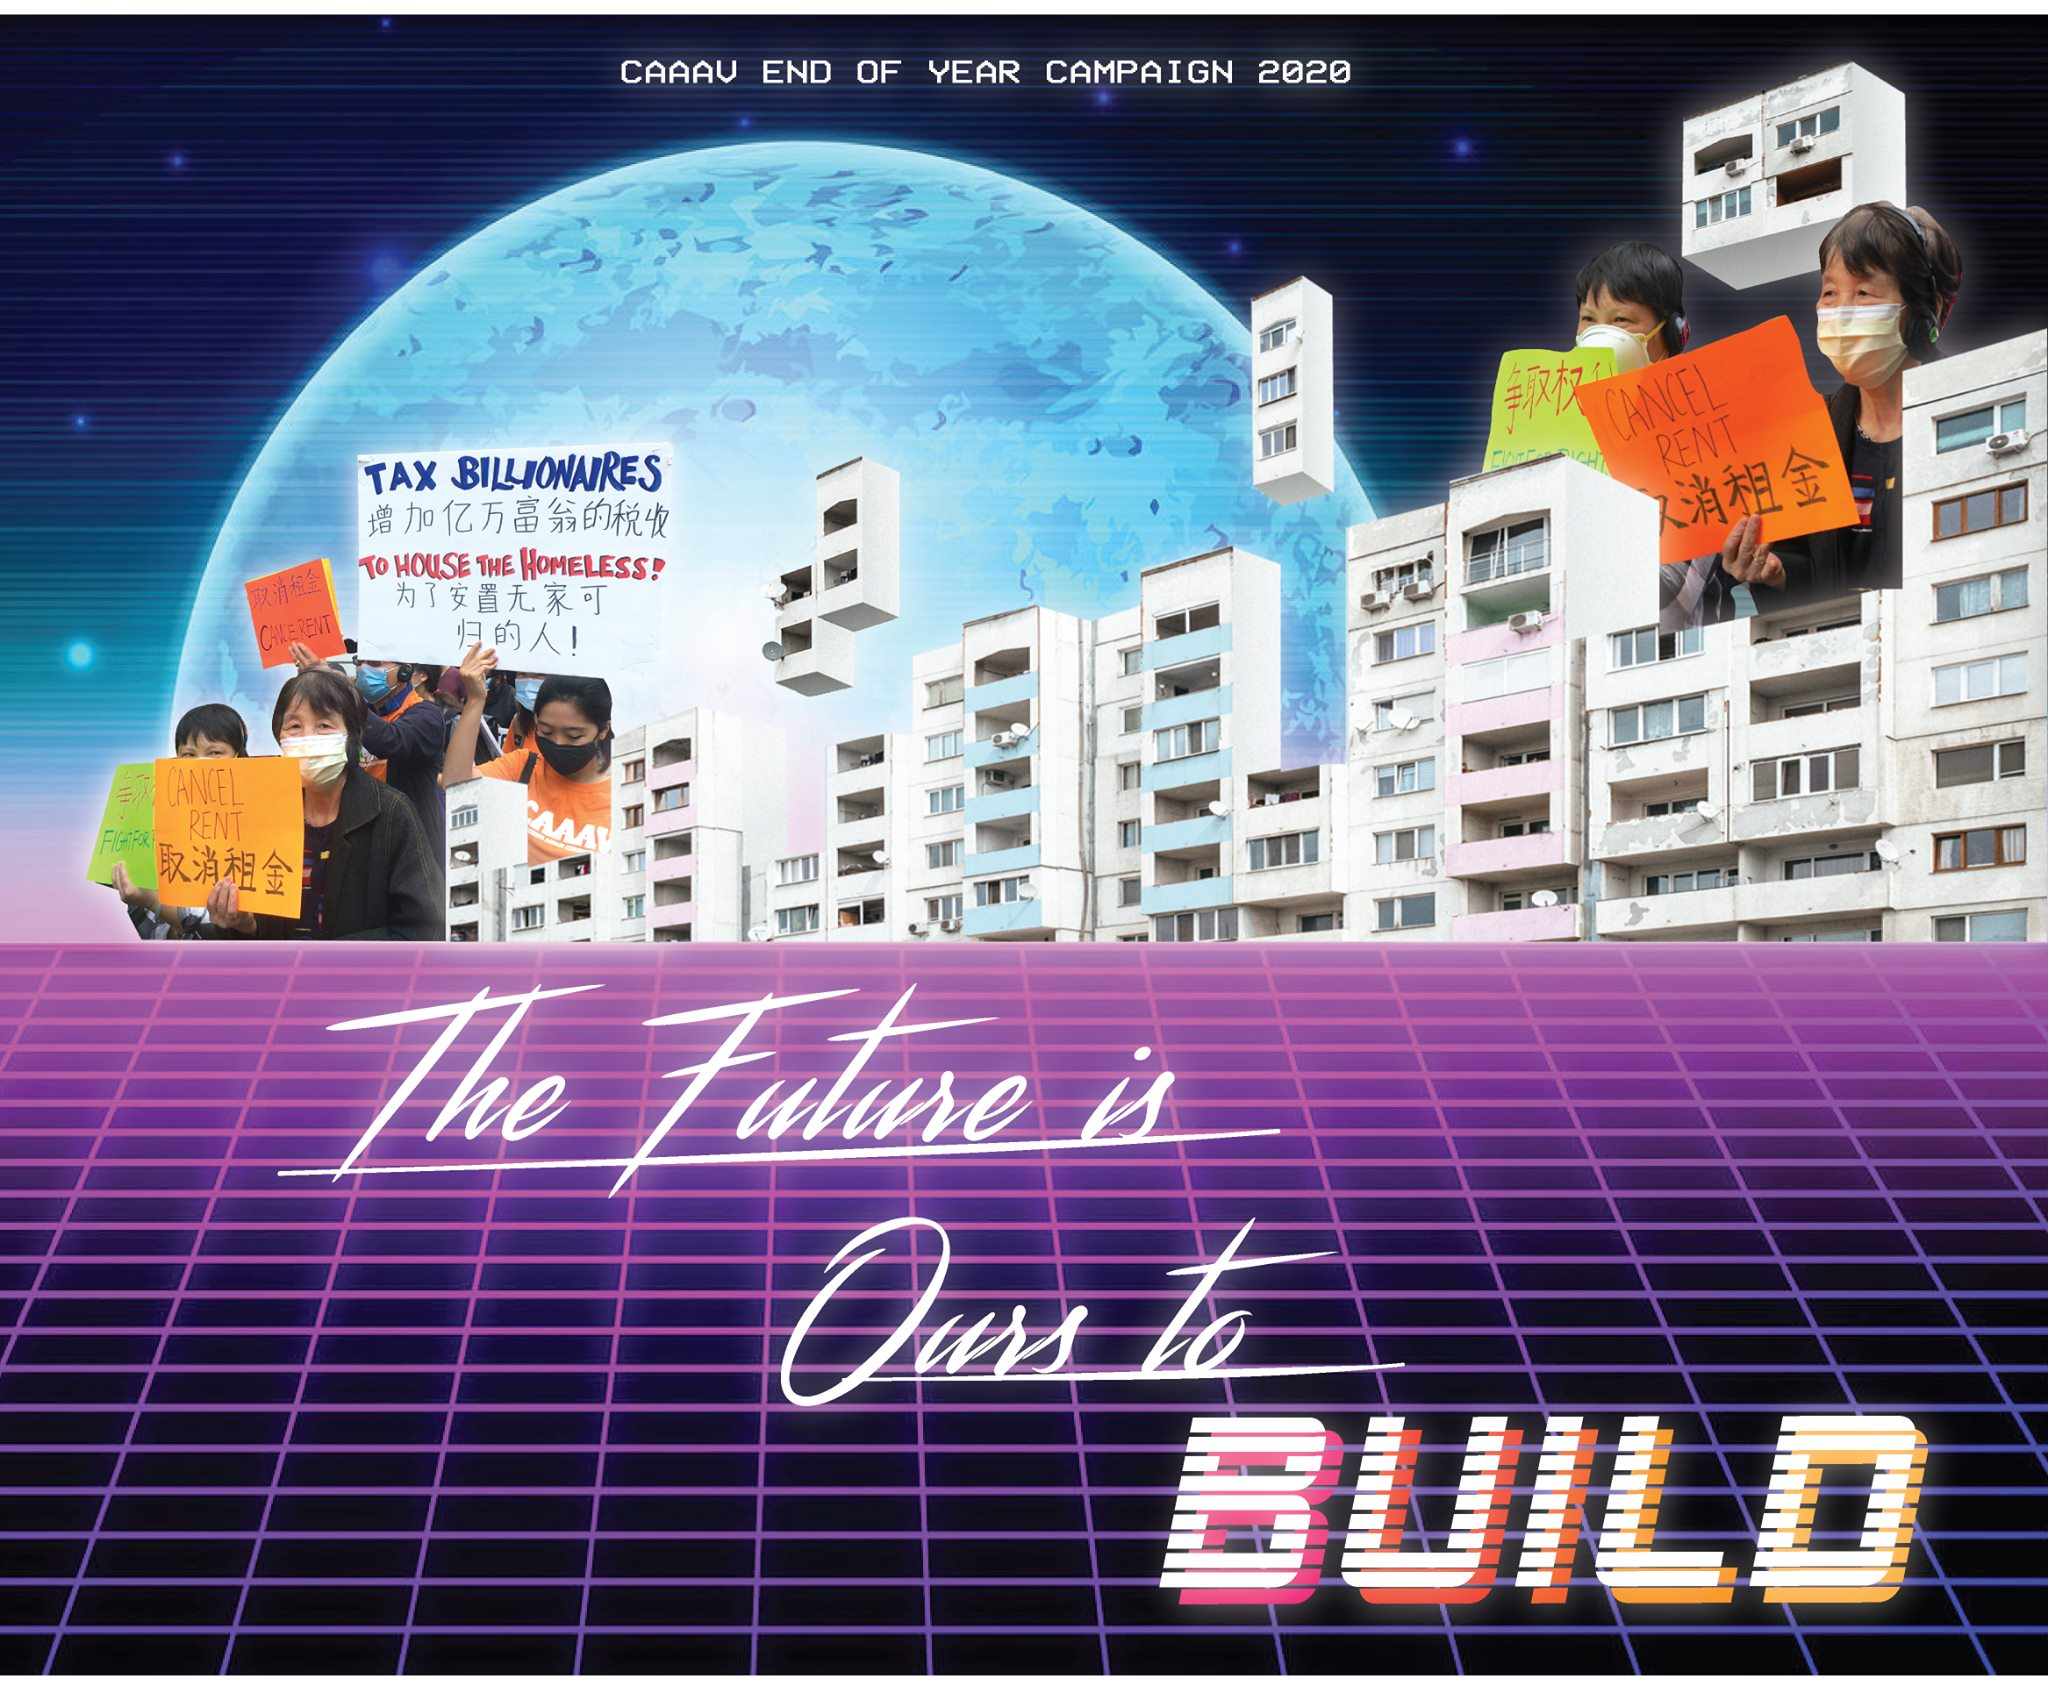 Its our time to build the future image